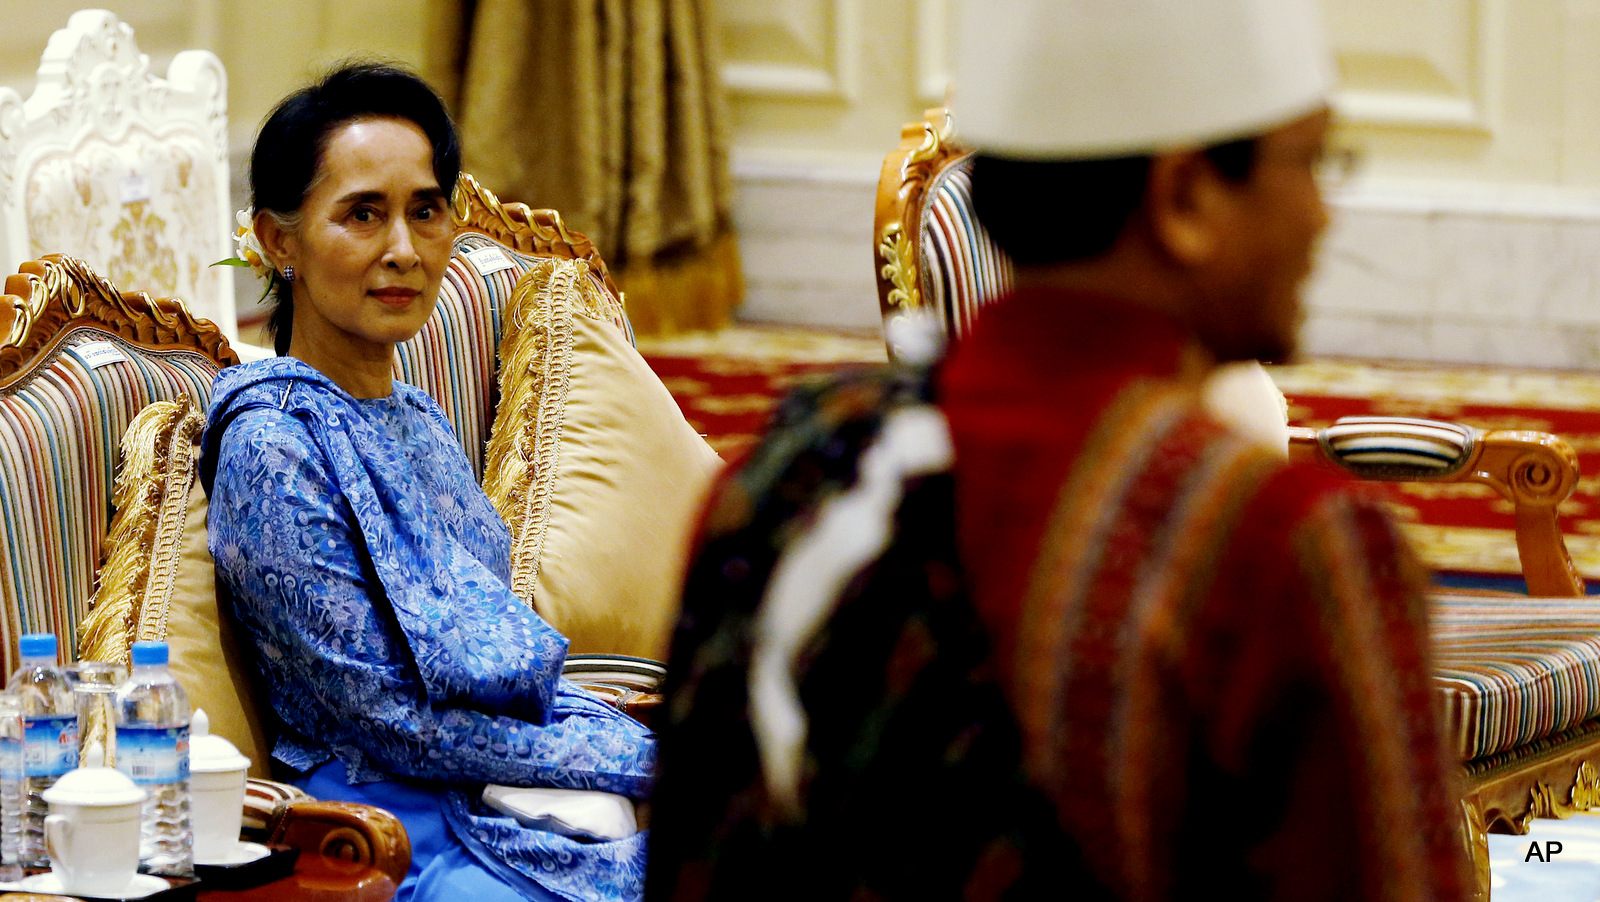 Aung San Suu Kyi attends the presidential handover ceremony in Naypyitaw, Myanmar.